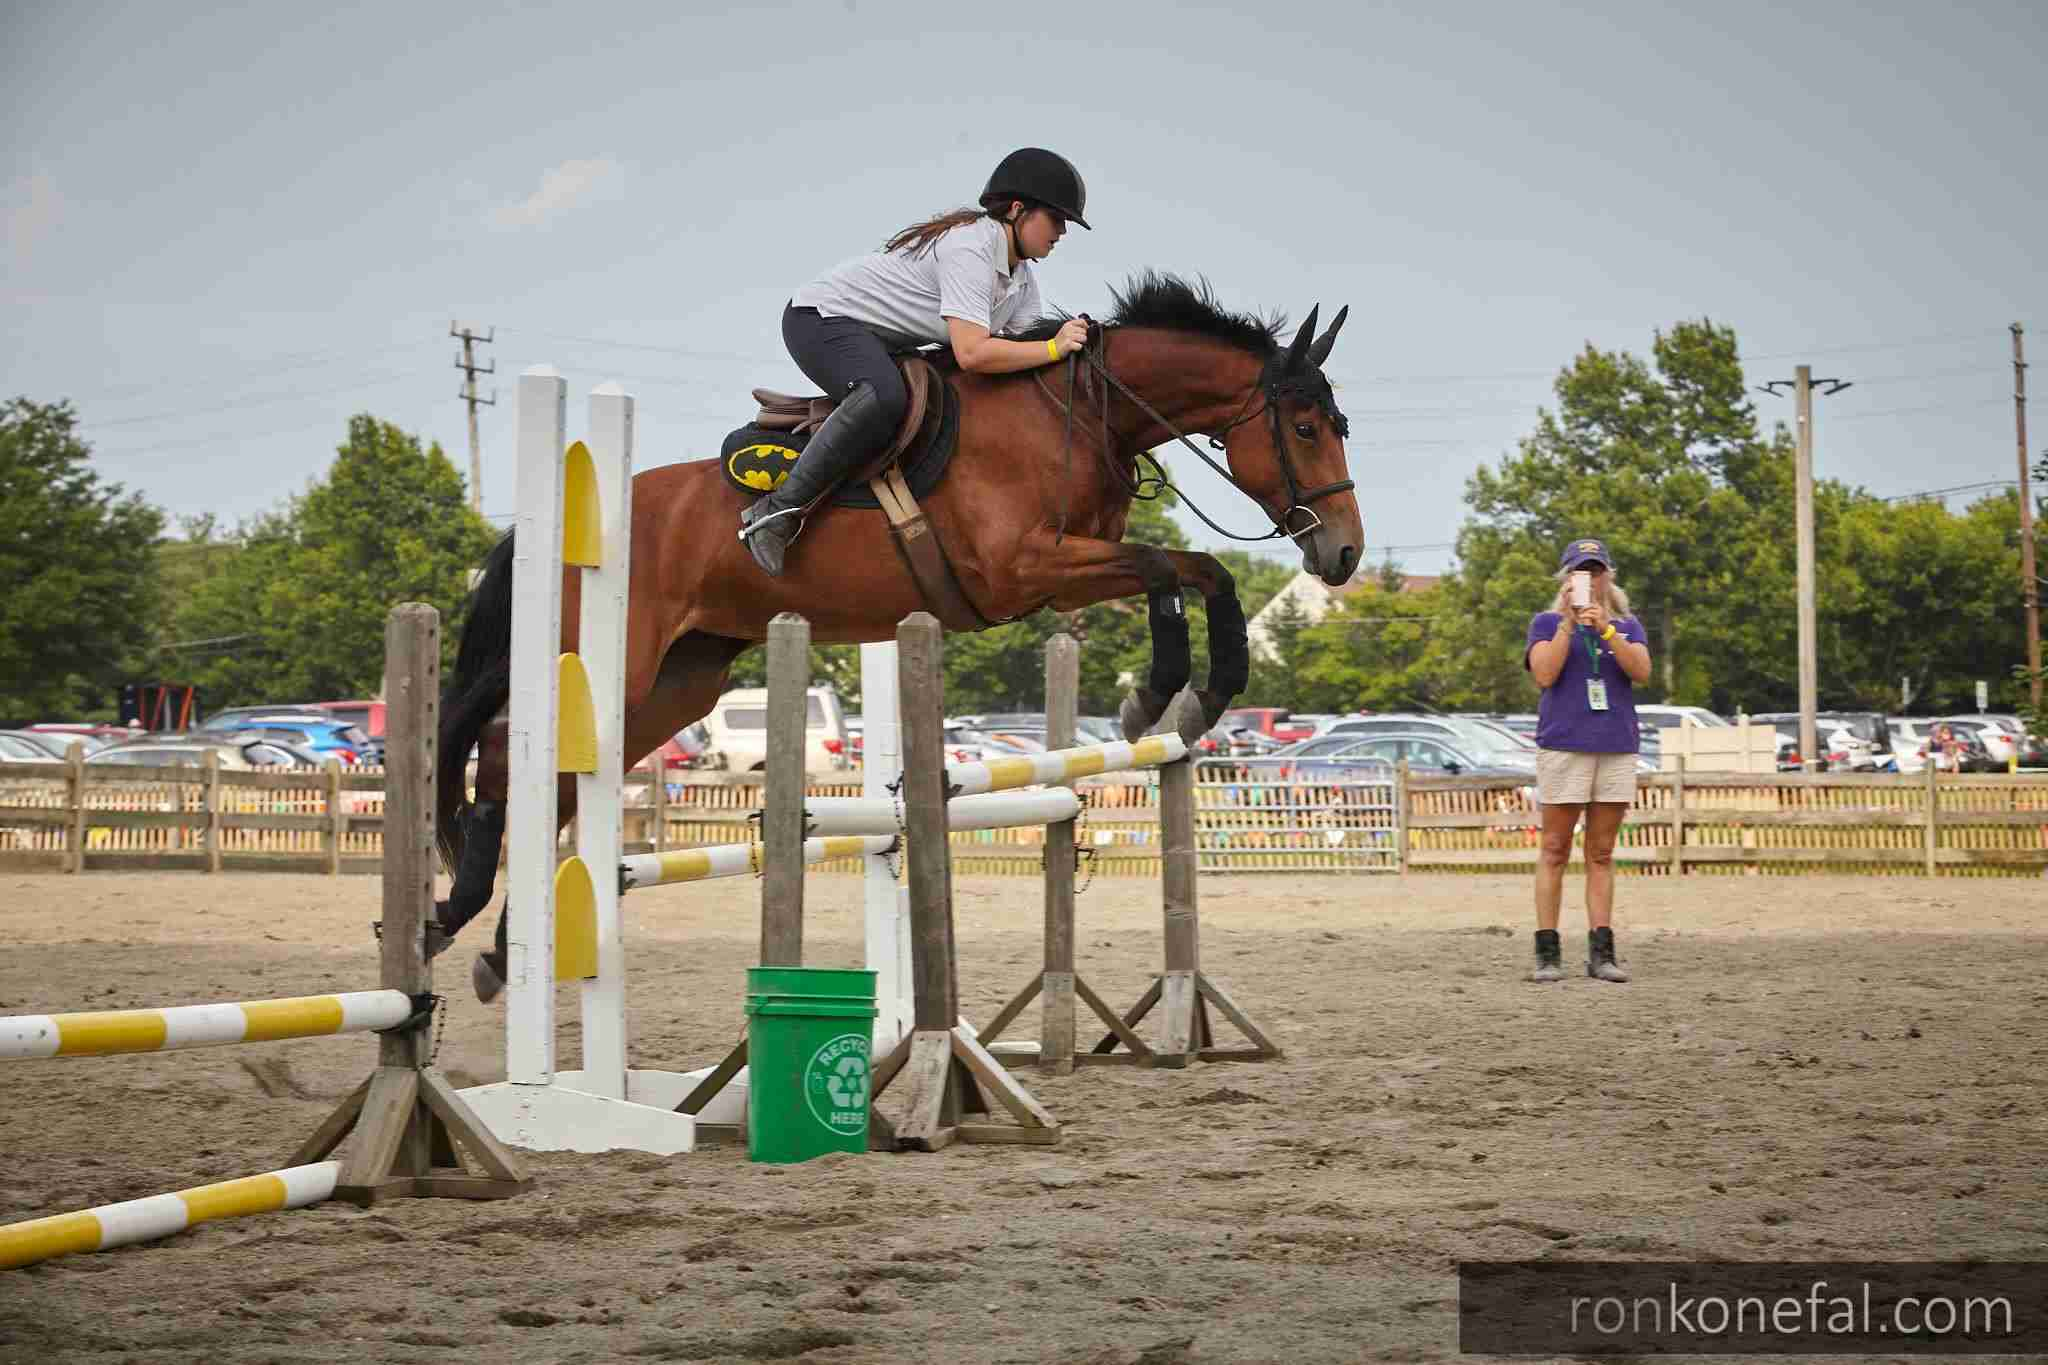 Olive Scaff horse 4h monmouth county nj 2